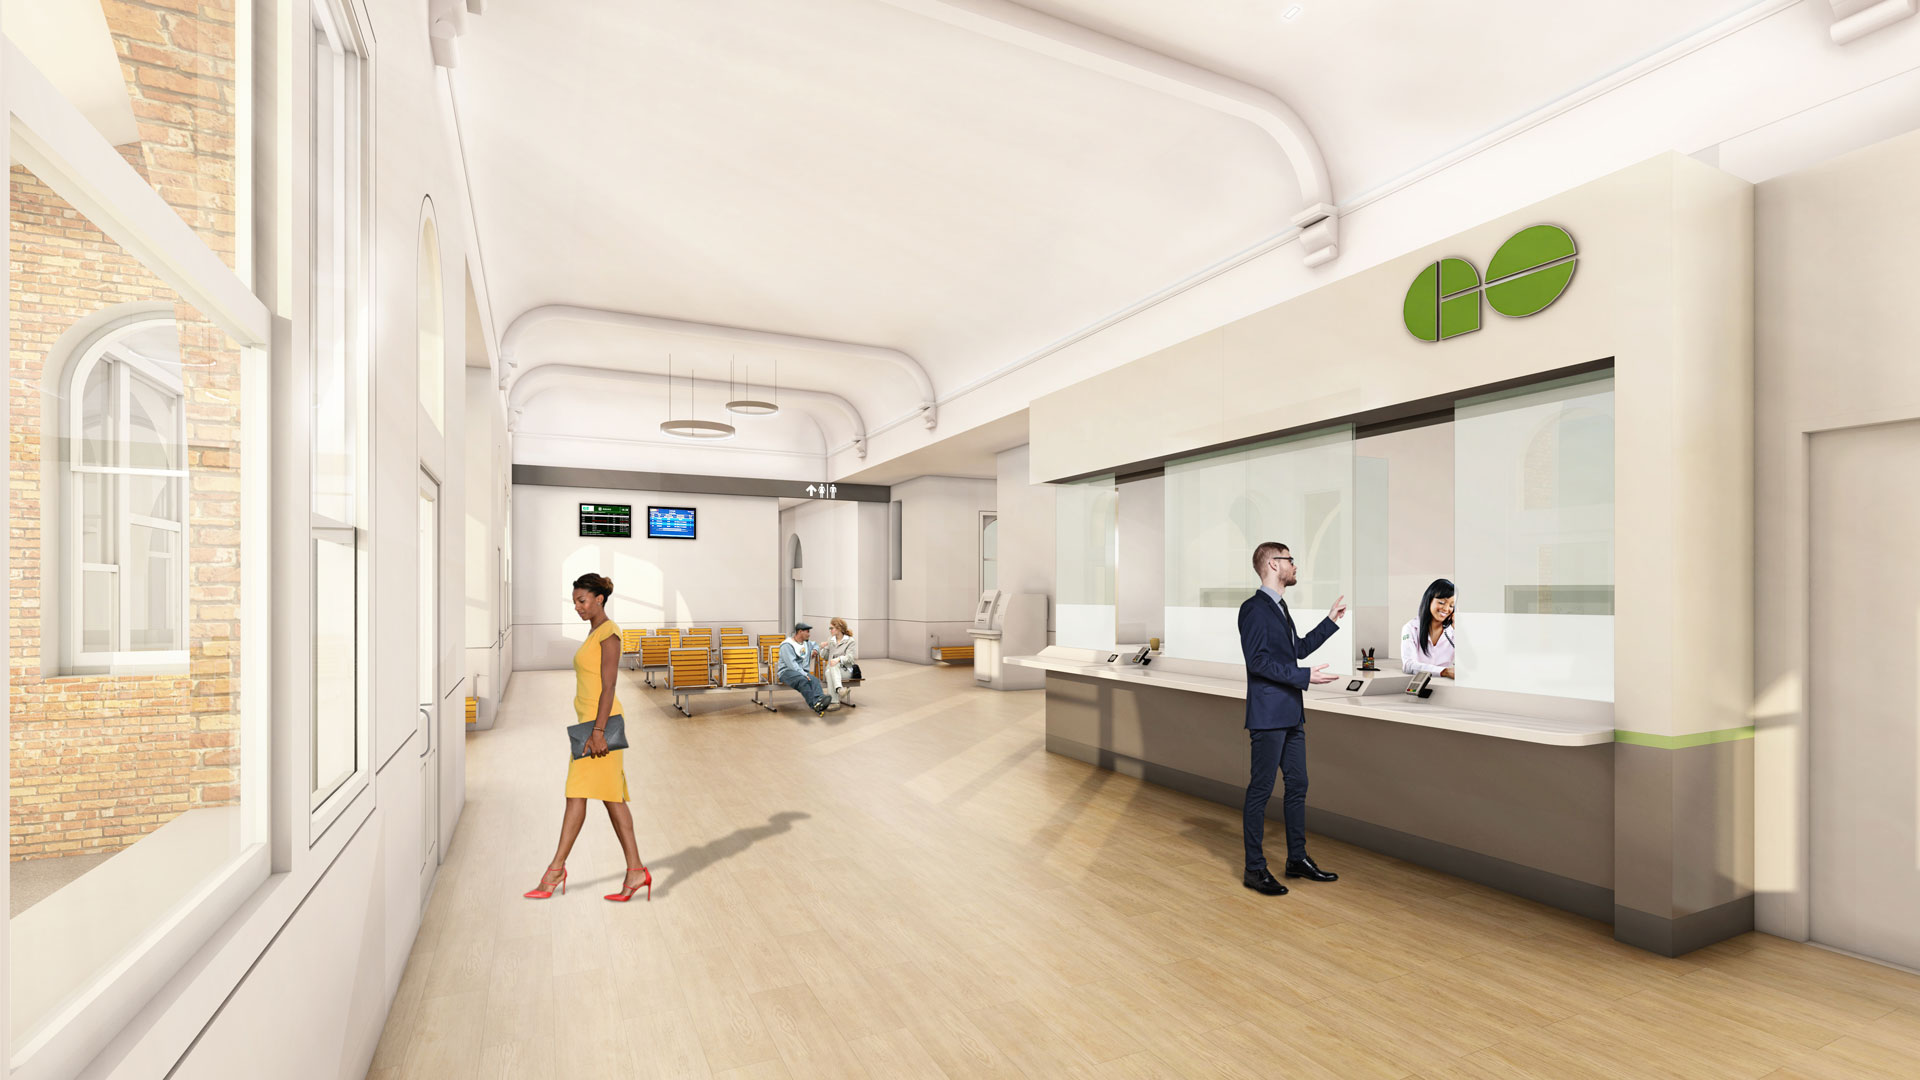 Interior rendering of the station, showing the ticket kiosk and waiting area